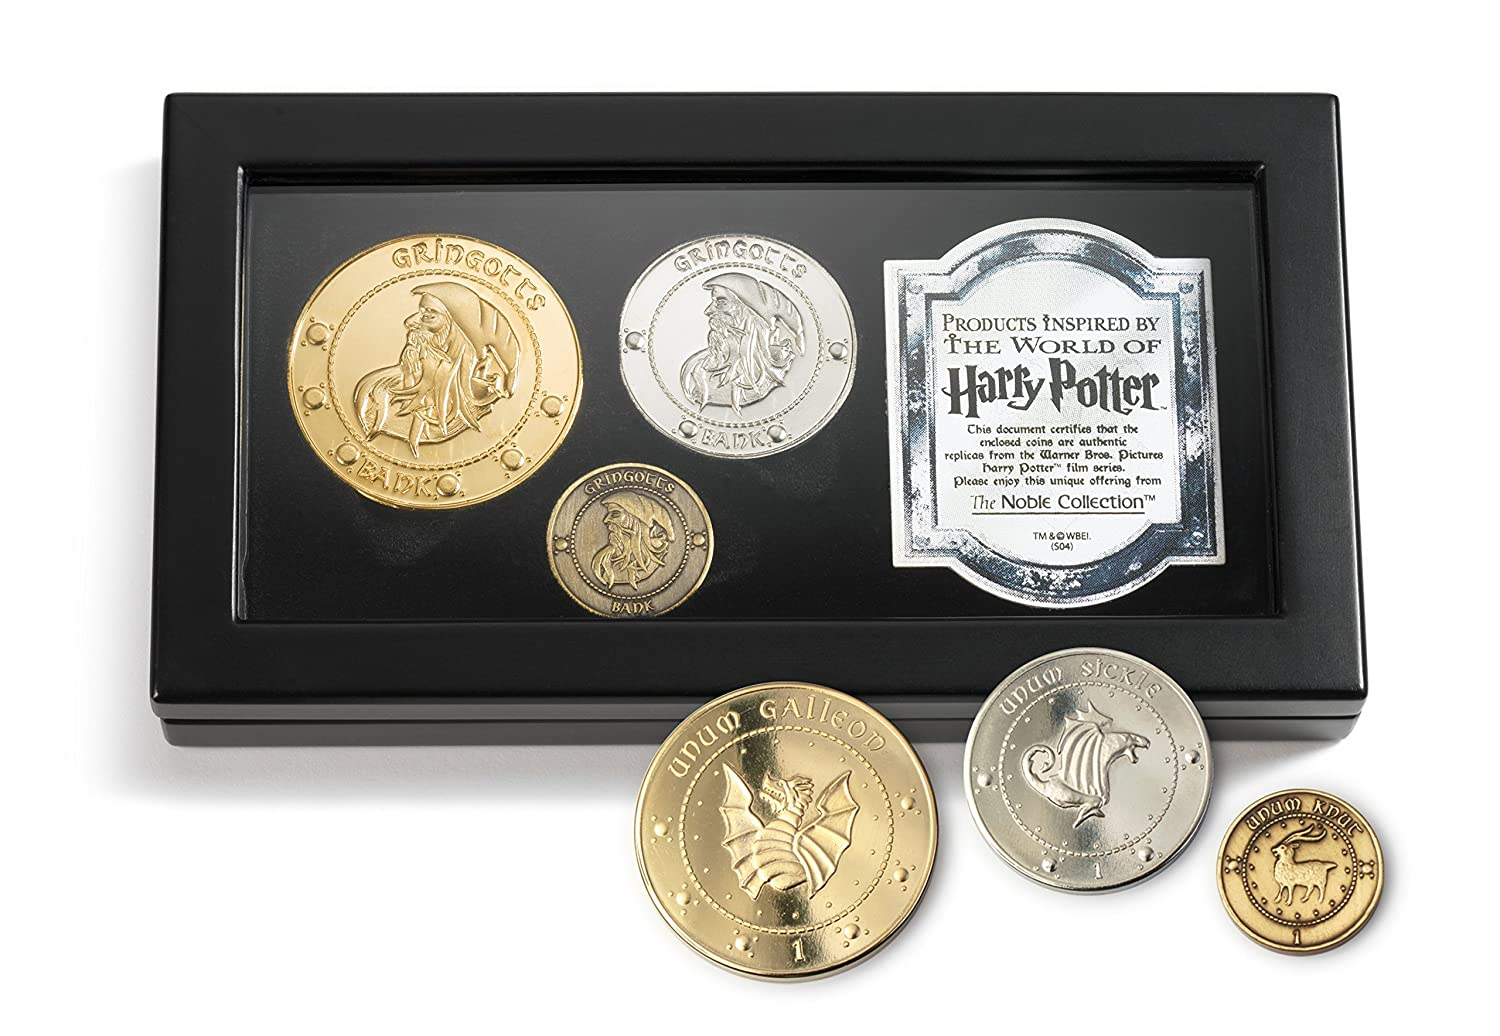 Harry Potter Book Worth Money : Harry potter gringotts bank coin collection with wooden